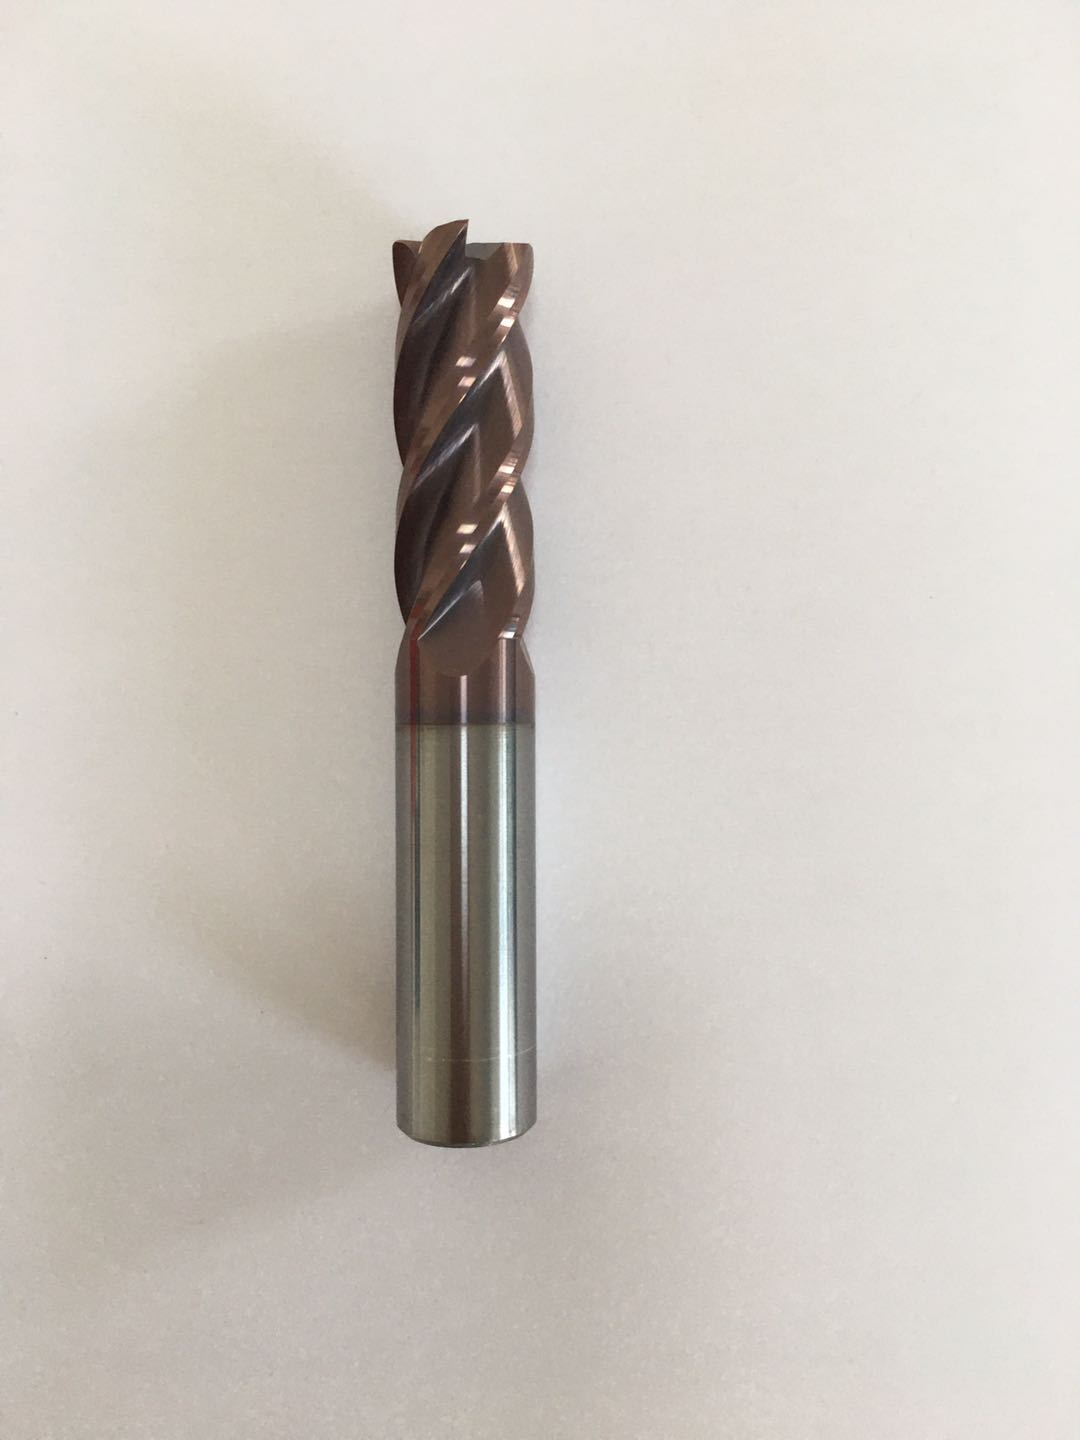 Bull Nose End Mill